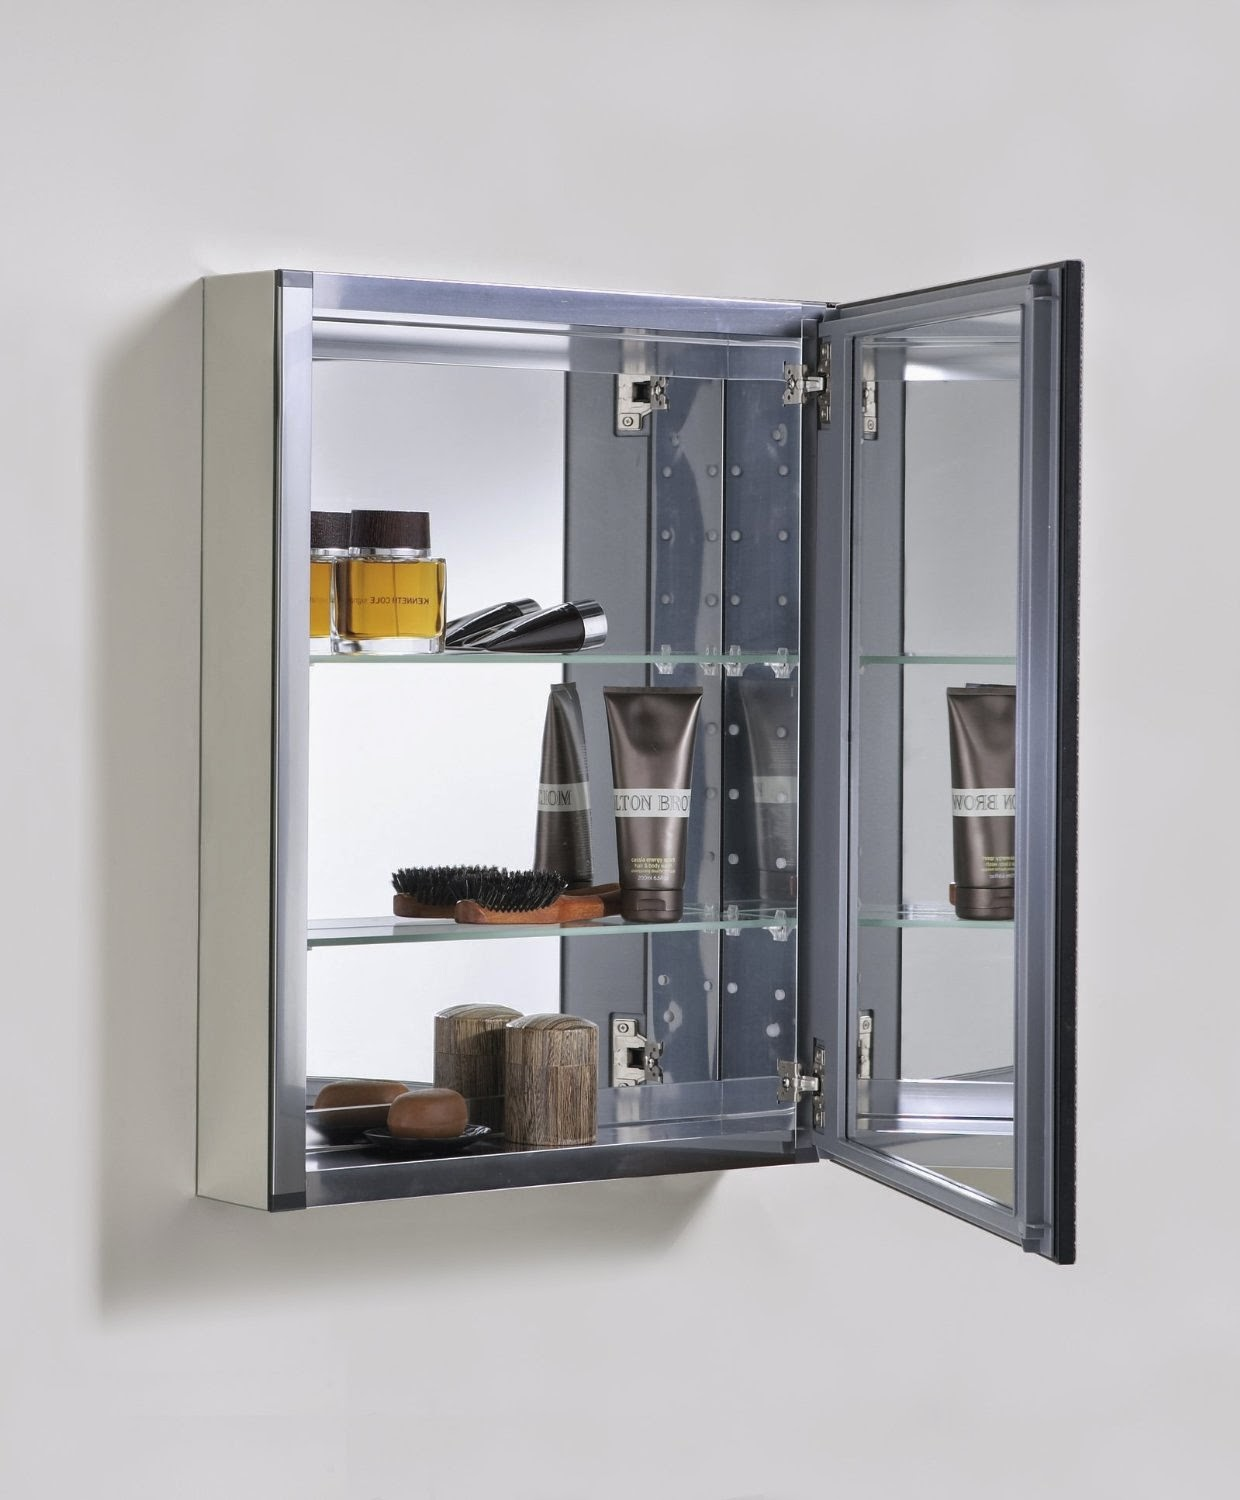 Kohler K 2967 20 X 26 Clic Aluminum Medicine Cabinet With Oil Rubbed Bronze Framed Mirror